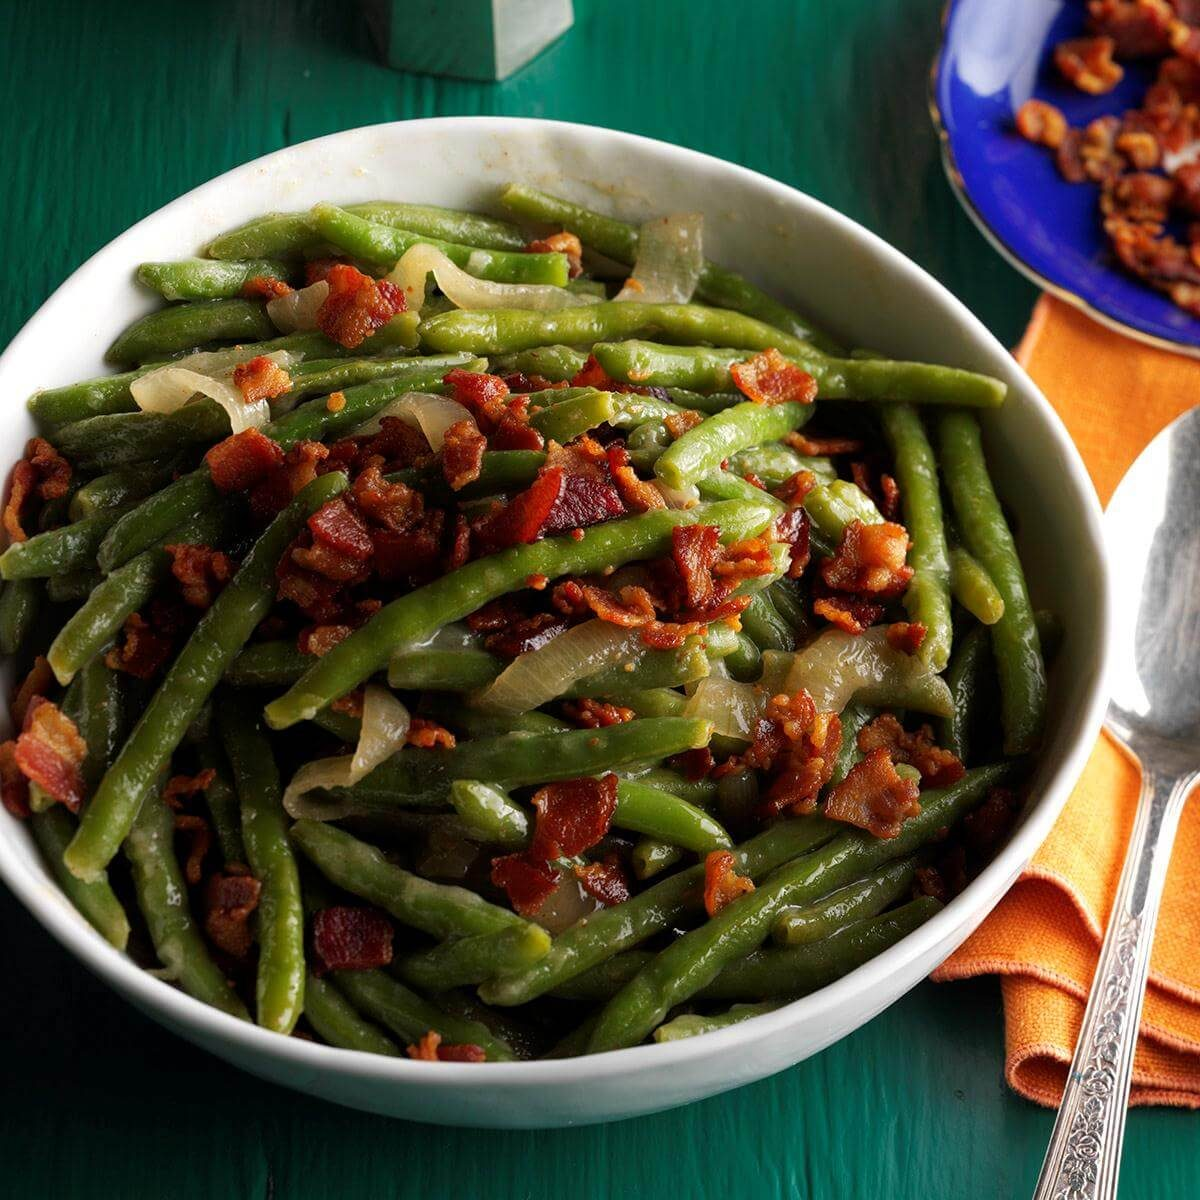 30 Side Dishes And Desserts To Try: Tangy Bacon Green Beans Recipe